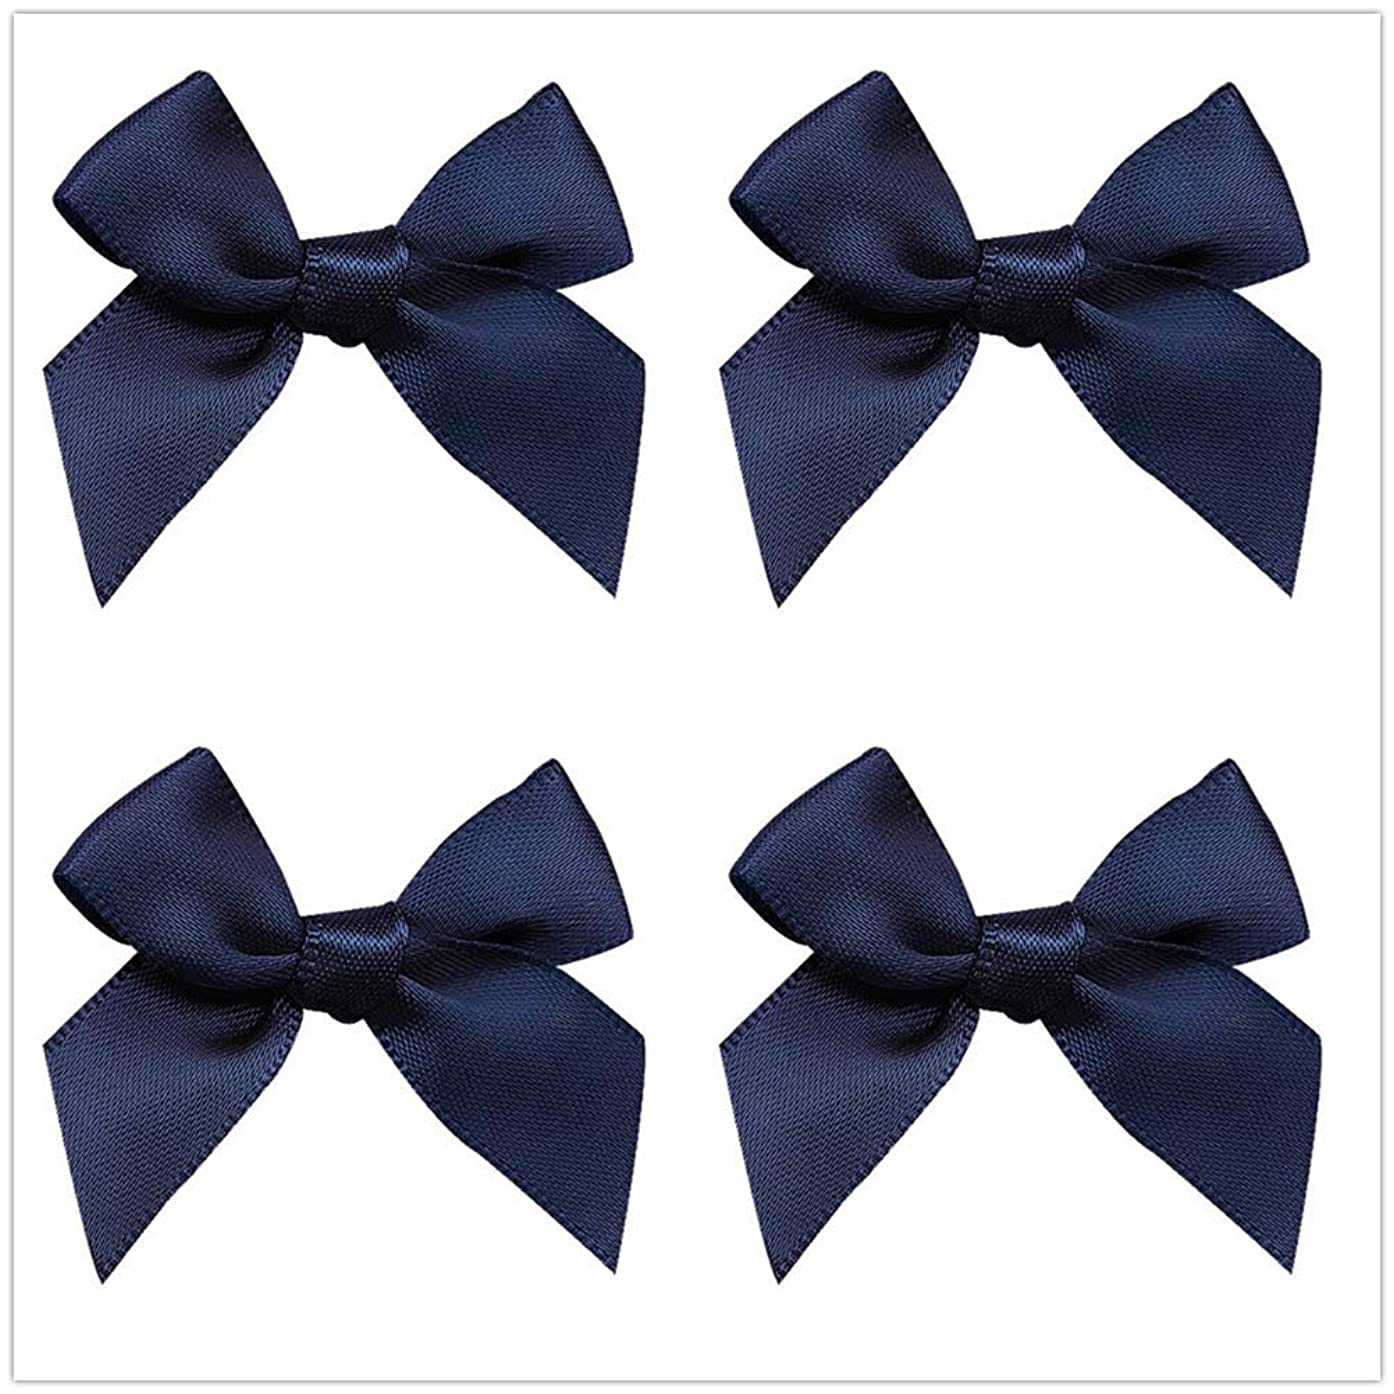 50pcs Mini Satin Ribbon Bows Fabric Ribbon Flowers 42mm x 39mm Appliques DIY Craft for Sewing, Scrapbooking, Wedding, Christmas Gift Warpping (Navy)